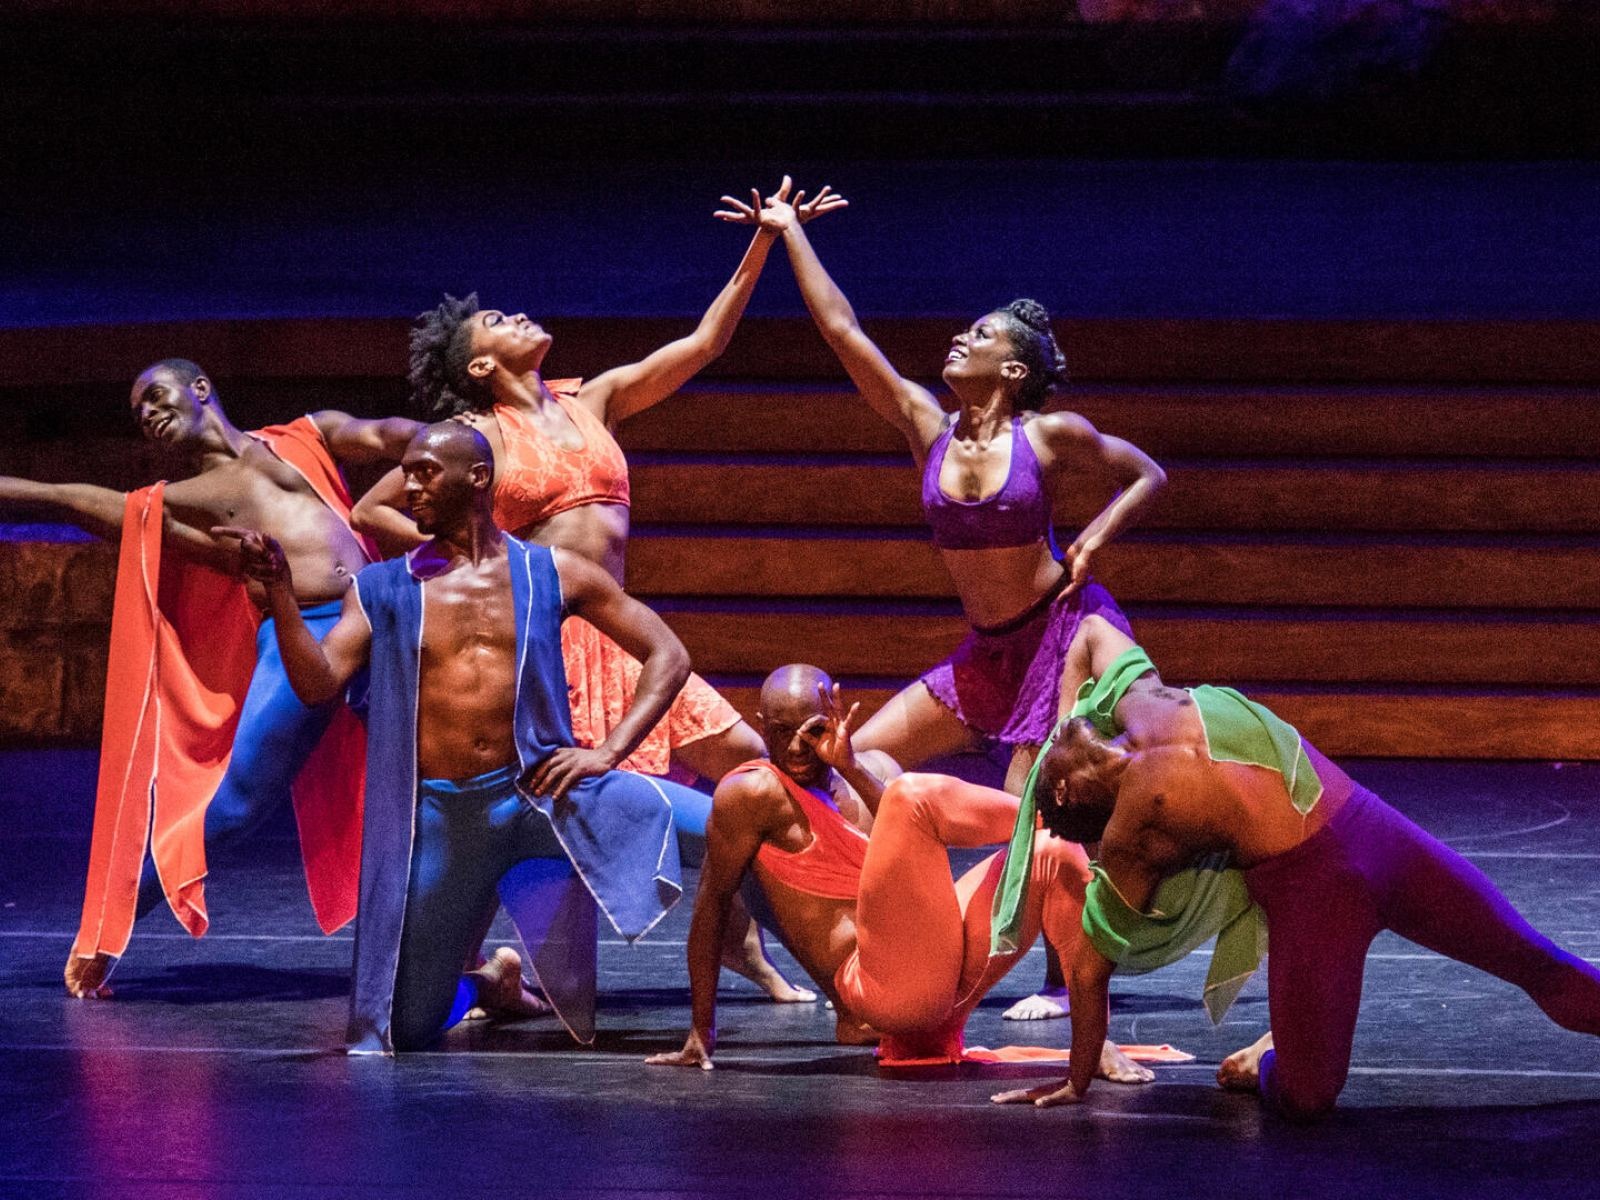 Main image for event titled Lula Washington Dance Theater: From the Ford